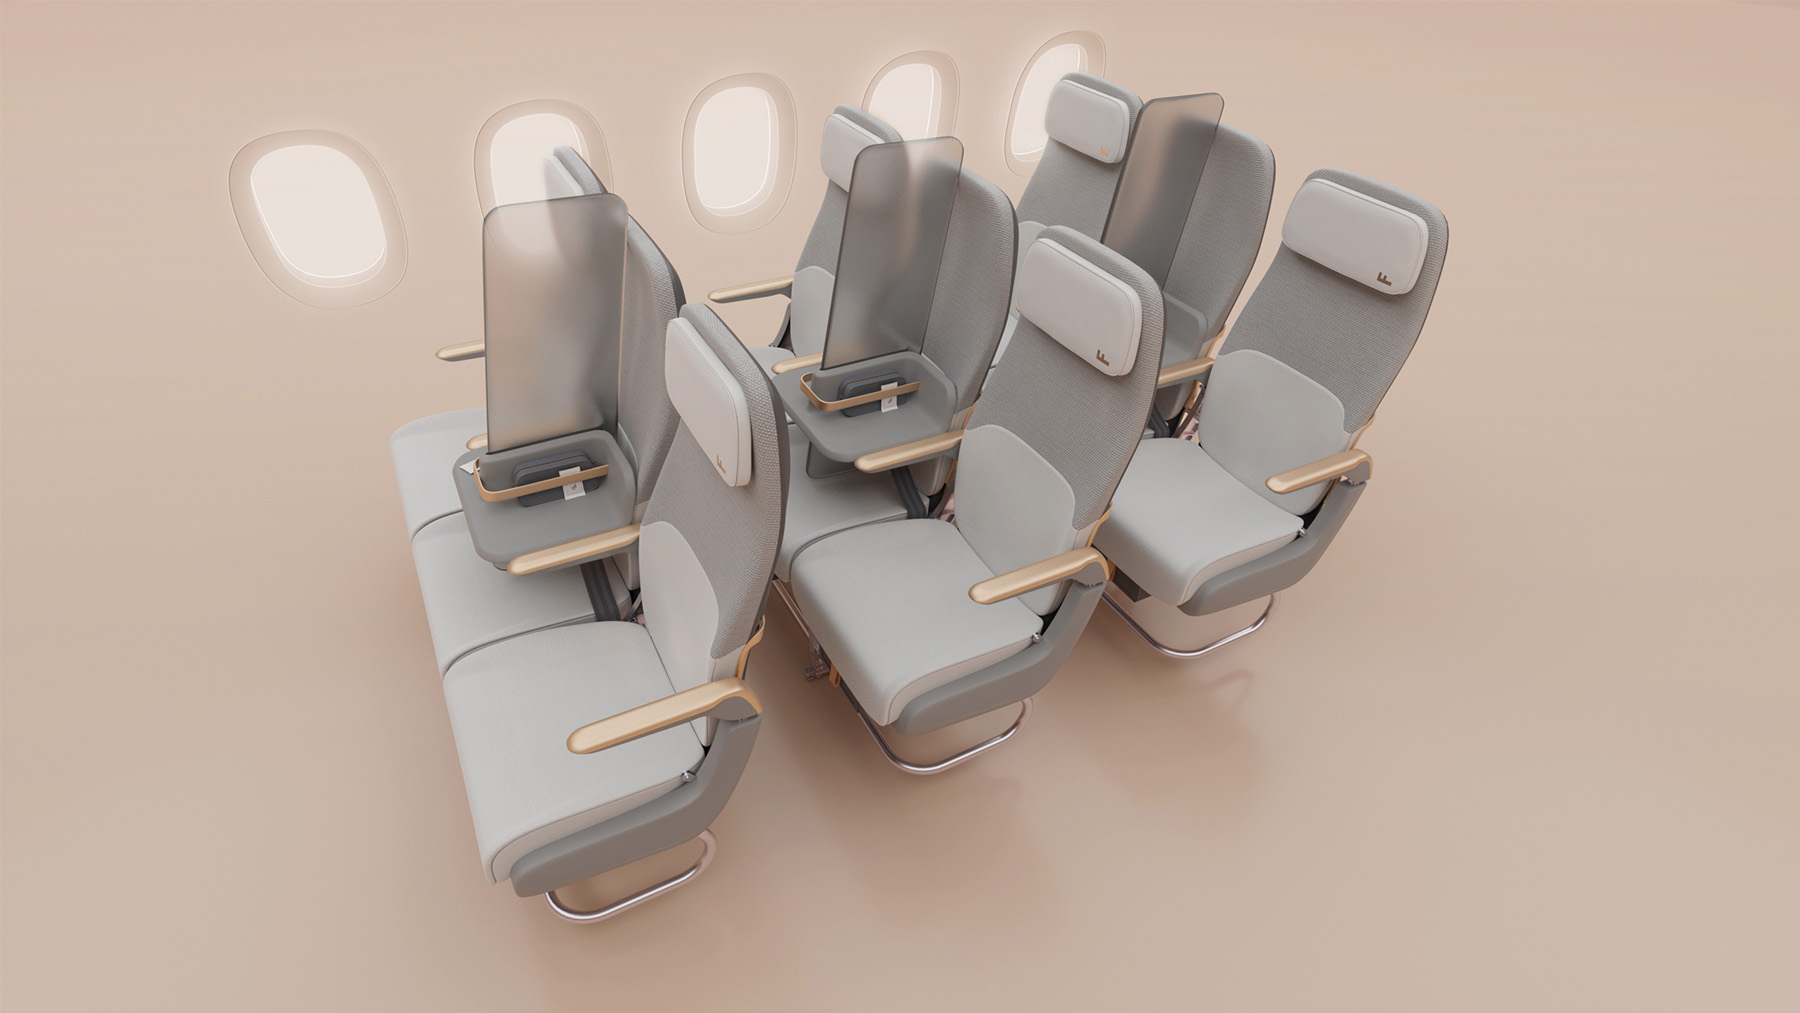 A New Plane Seat Divider Concept For Air Travel In The Coronavirus Era